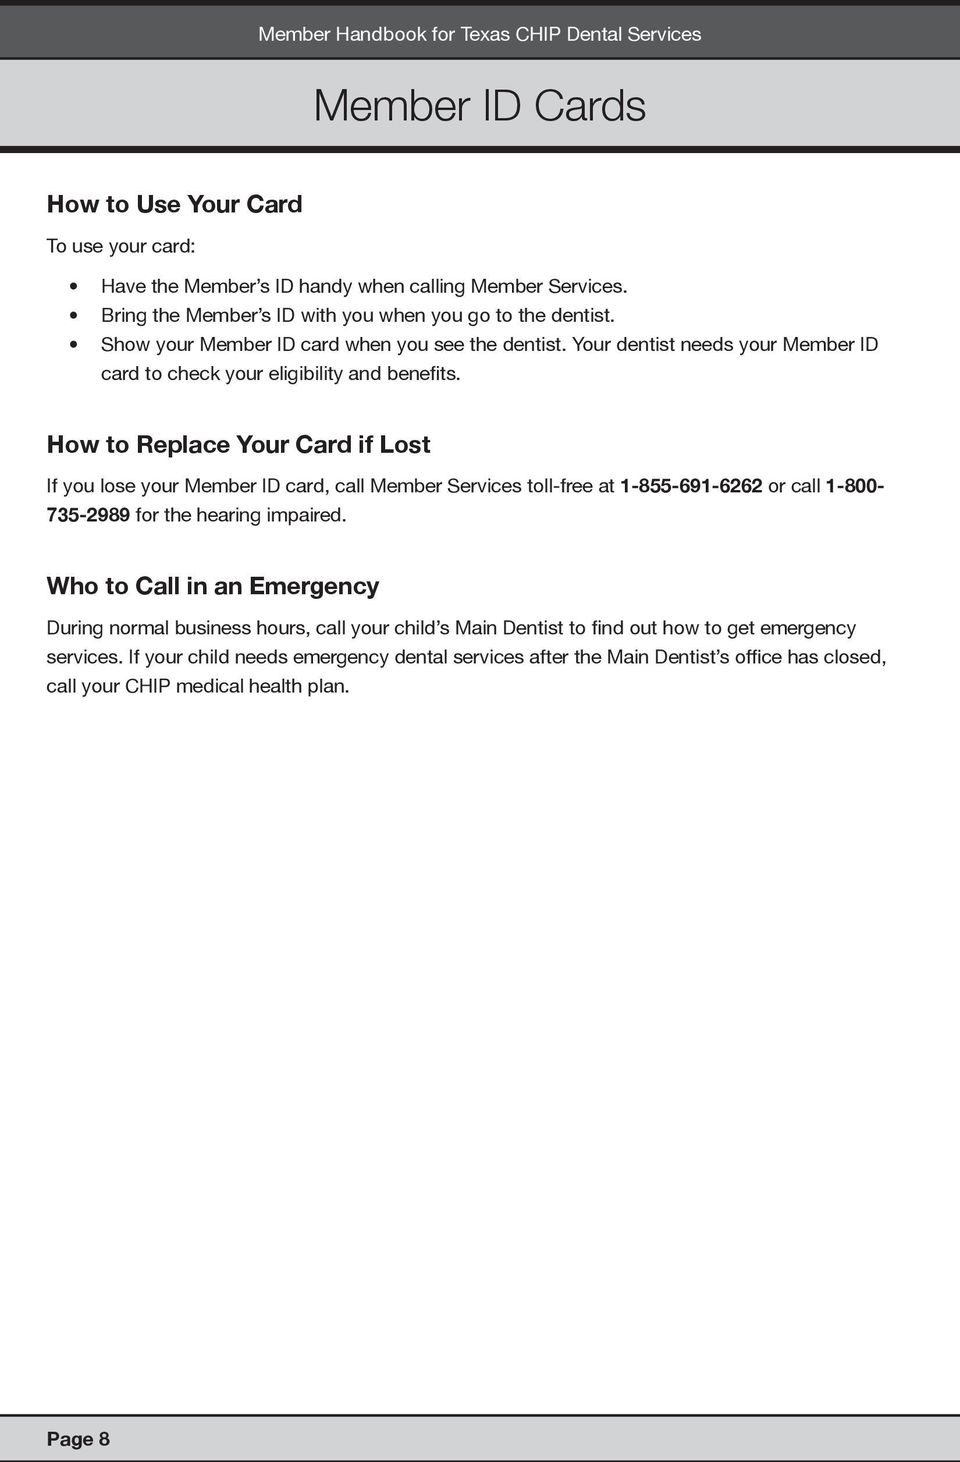 How to Replace Your Card if Lost If you lose your Member ID card, call Member Services toll-free at 1-855-691-6262 or call 1-800- 735-2989 for the hearing impaired.